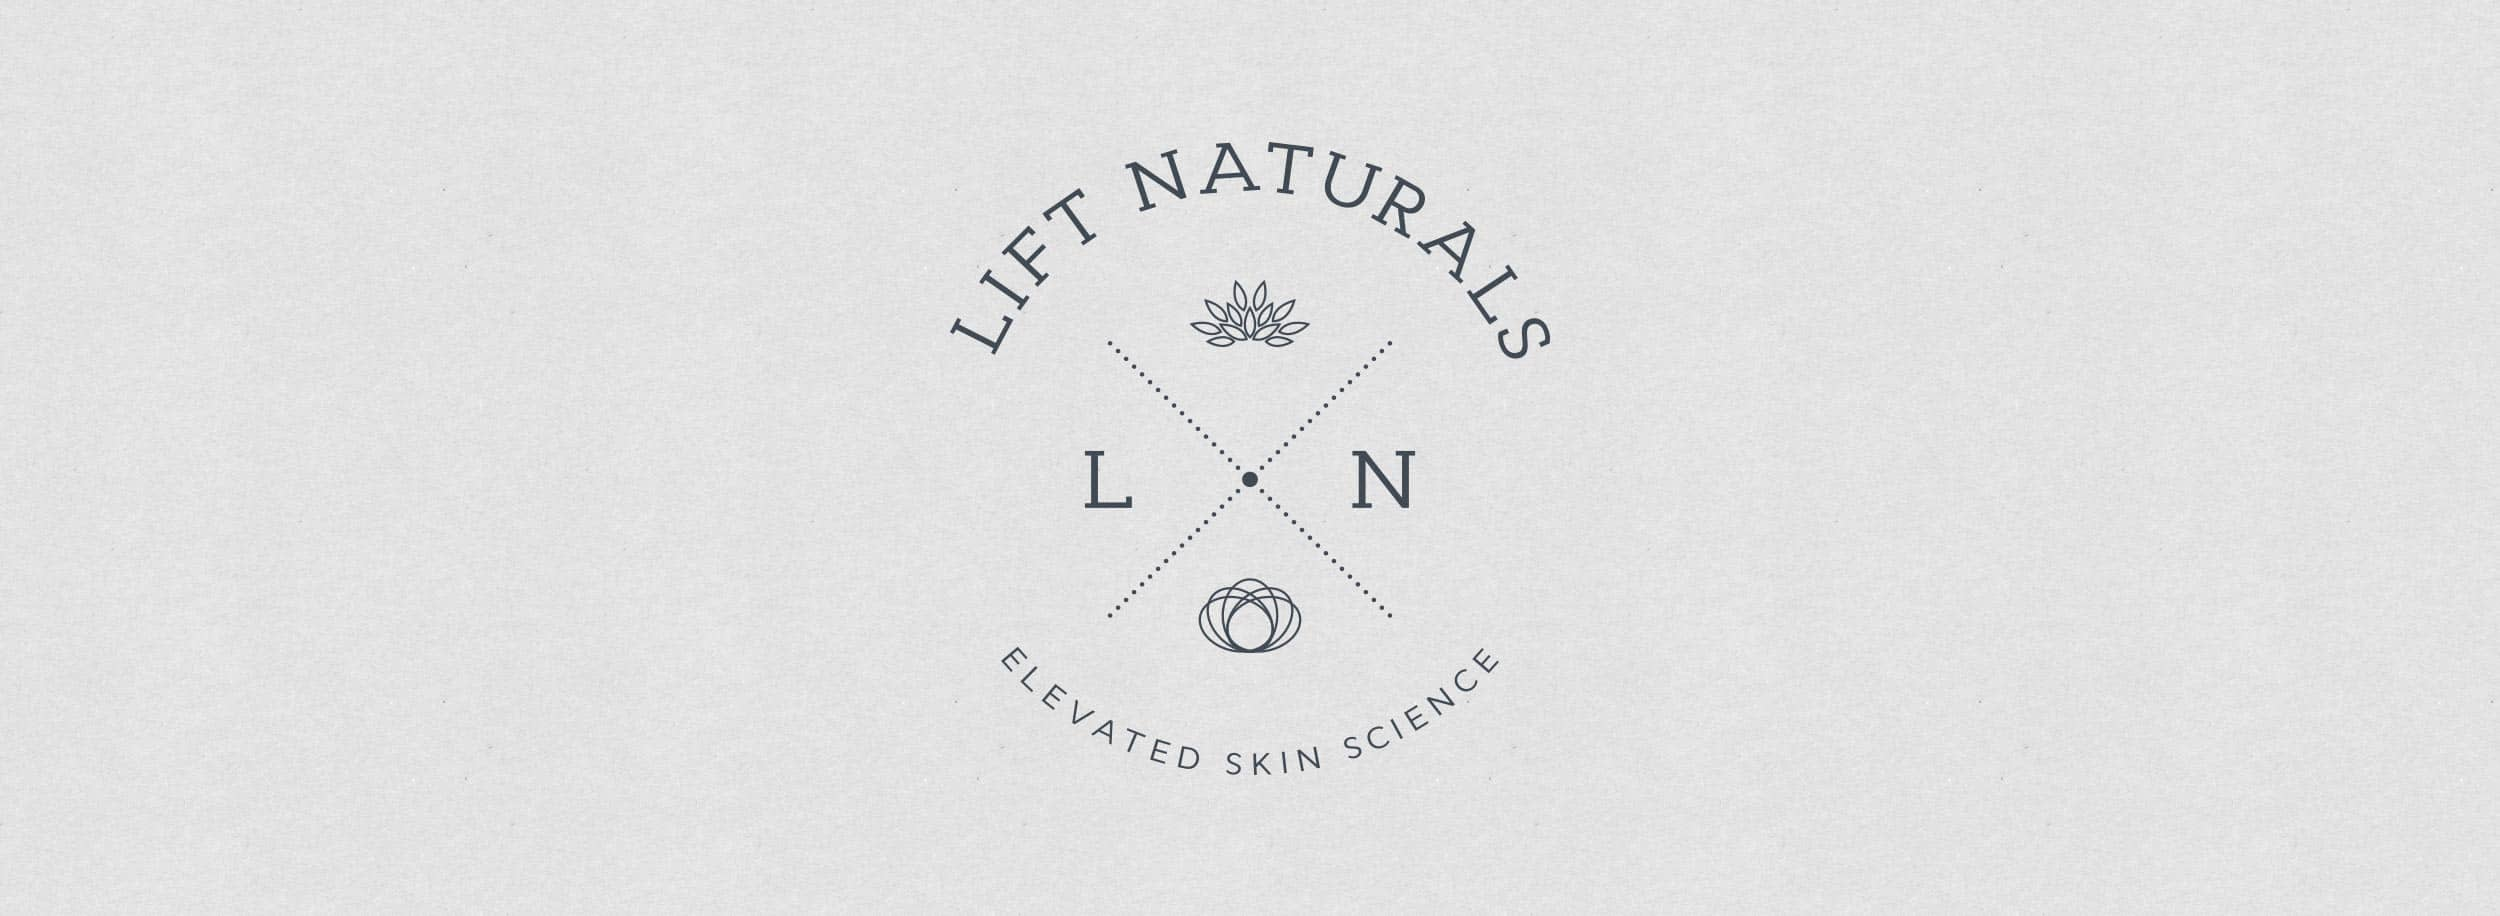 Lift Naturals logo: emblem style, clean and sophisticated. © LET'S PANDA